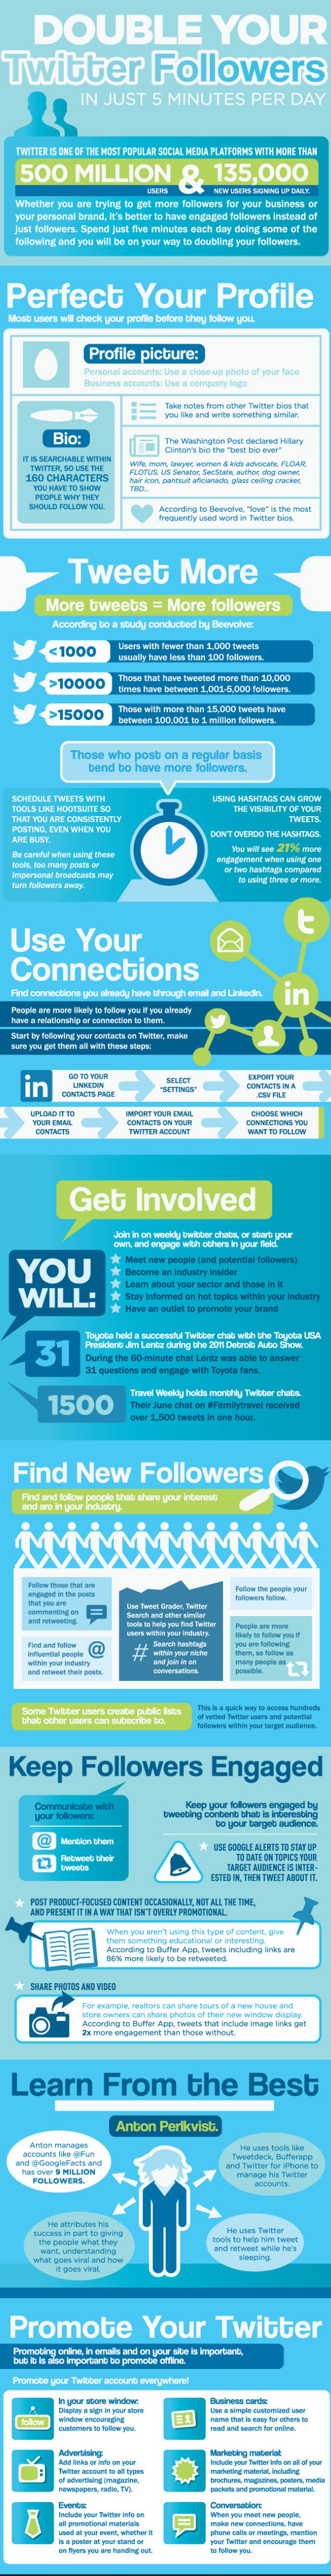 how-to-double-your-twitter-followers-in-just-5-minutes-a-day